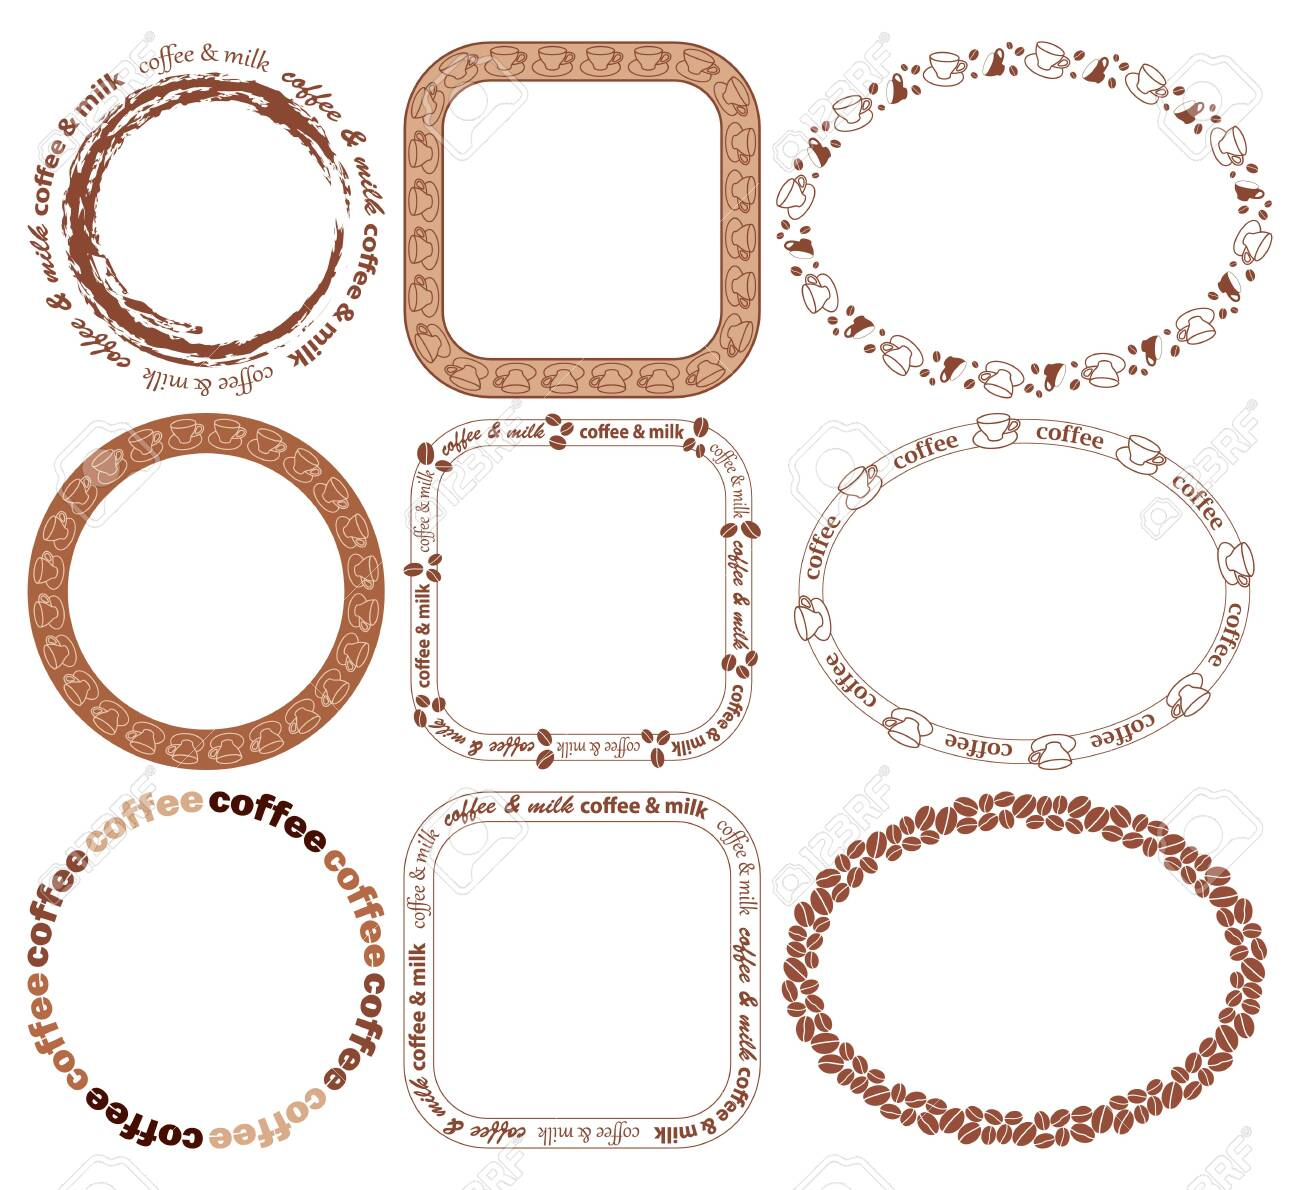 Decorative Frames With Coffee Grains And Coffee Cups Vector Royalty Free Cliparts Vectors And Stock Illustration Image 138880456